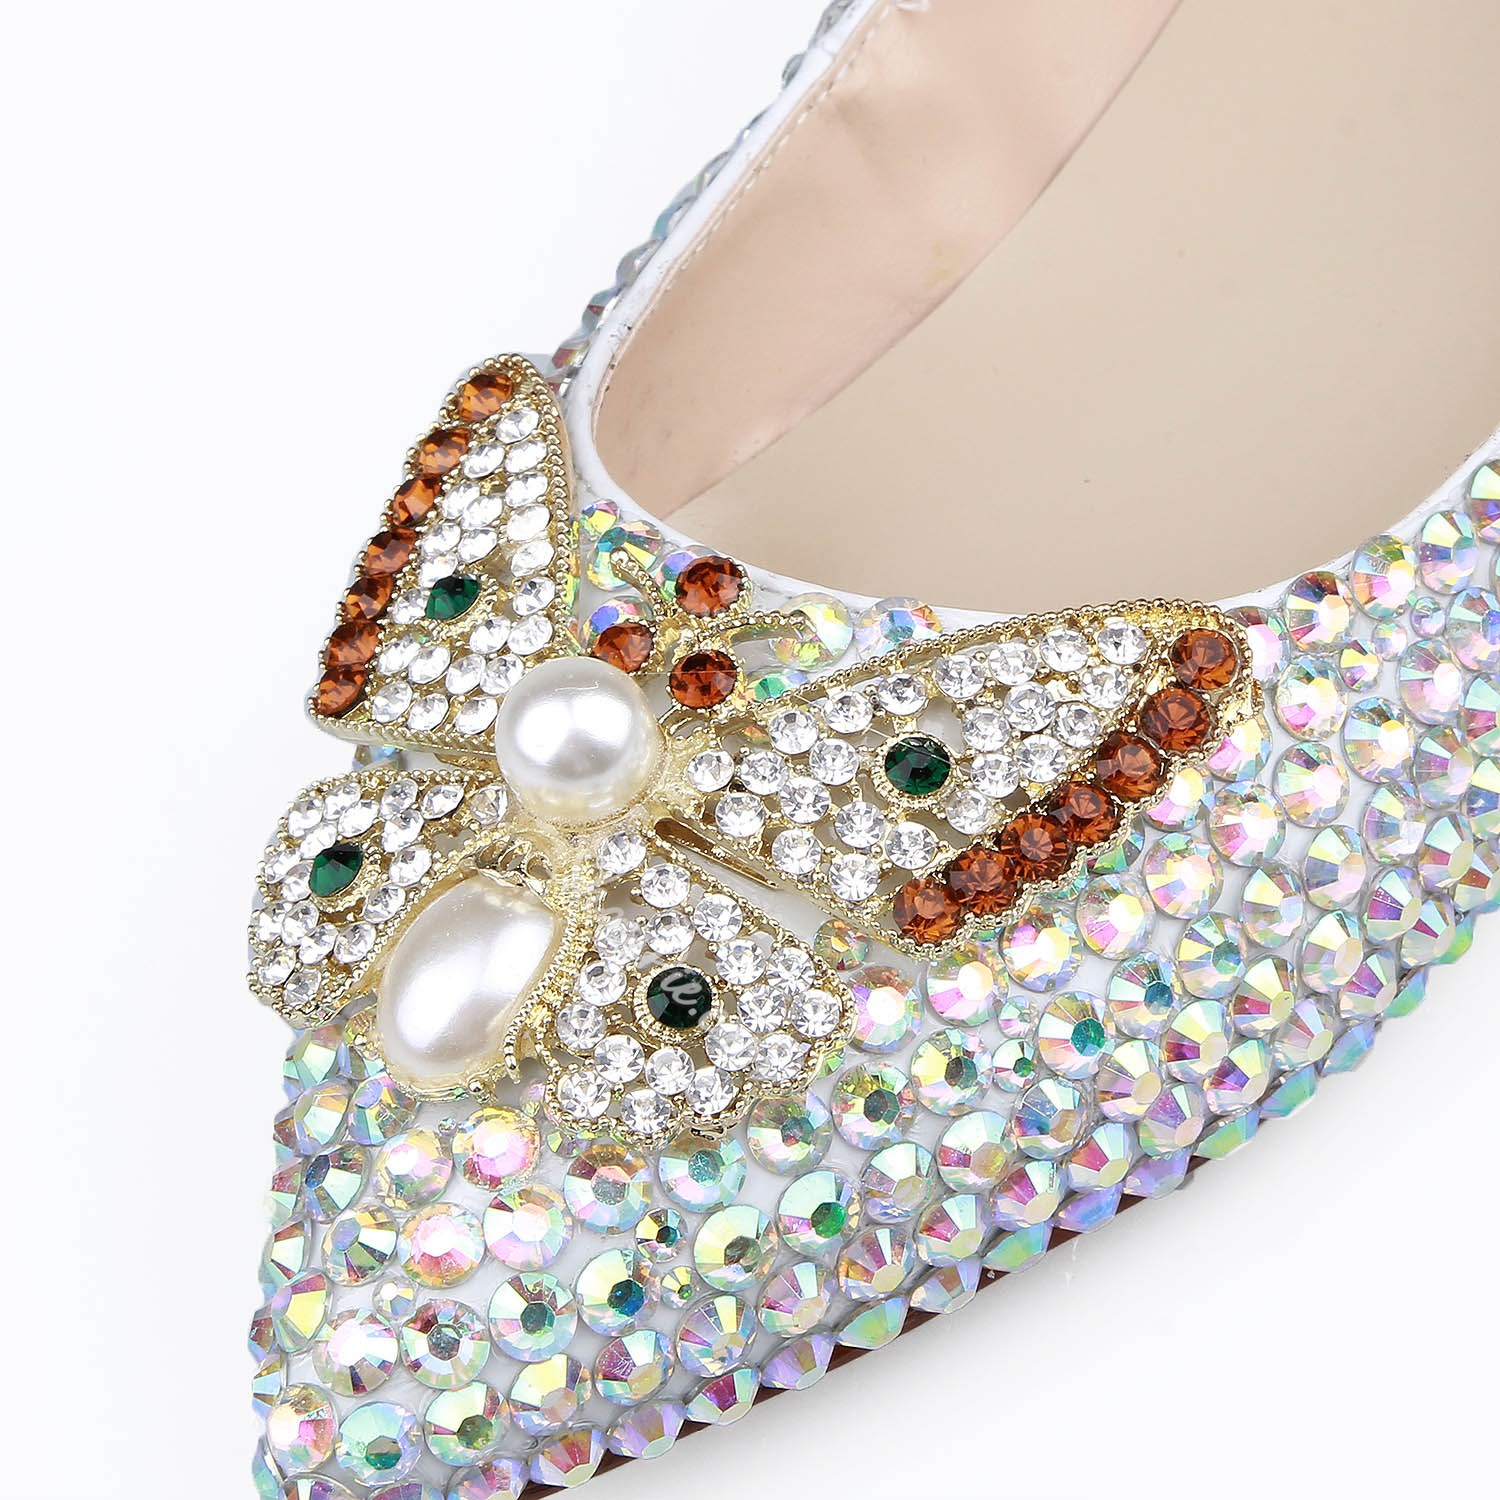 Shoespie Rhinestone Beads Pointed Toe Slip-On Banquet Bridal Shoes Loafers